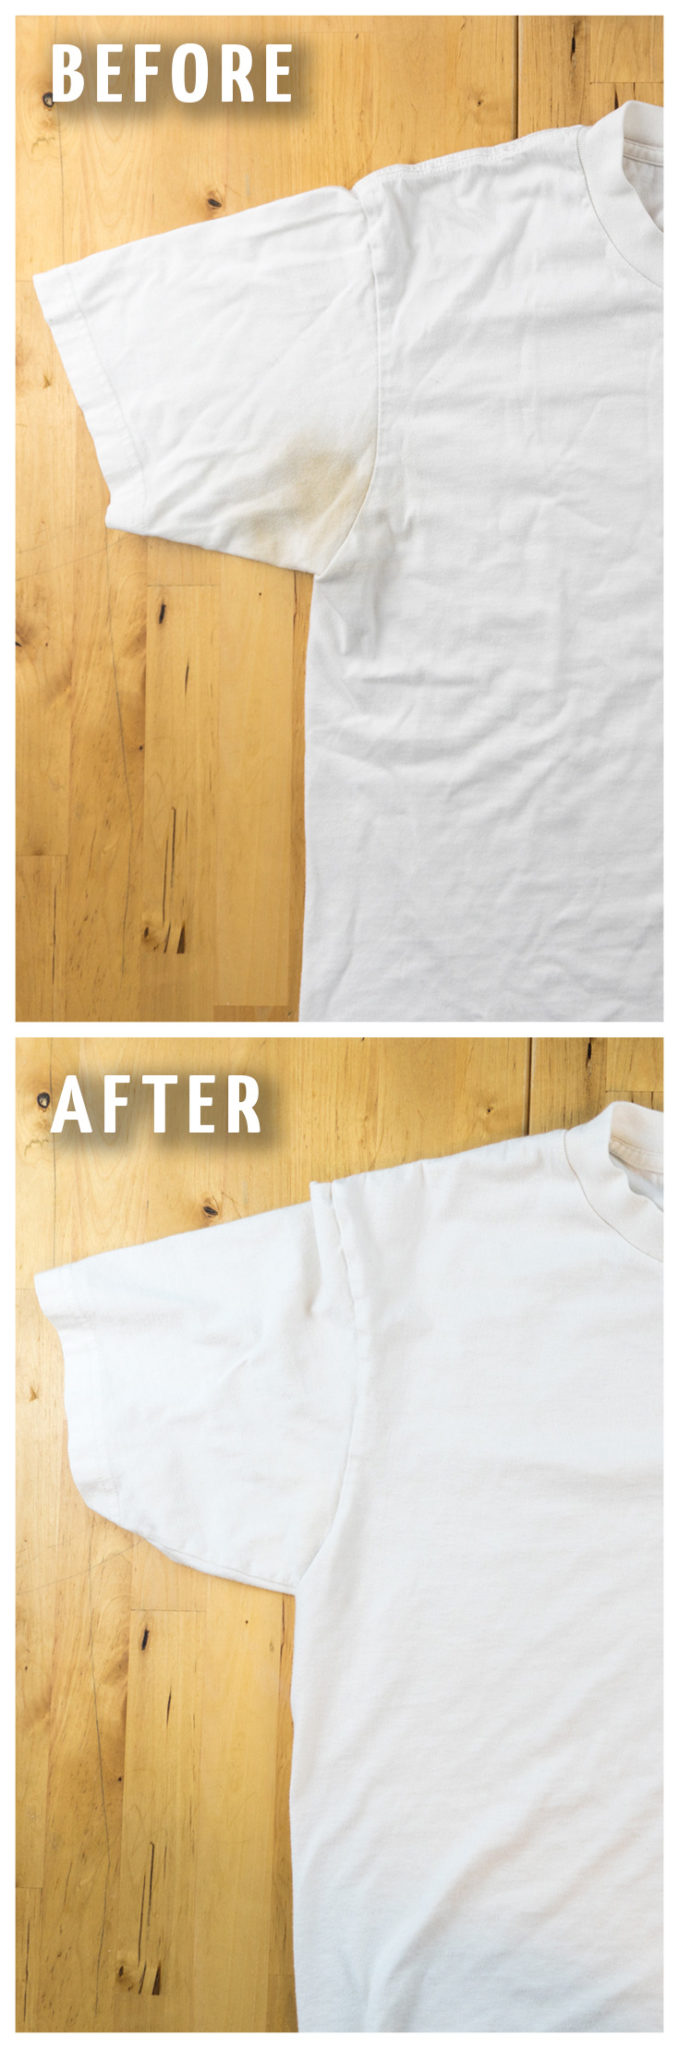 6622da6b5b3c How To Remove Yellow Sweat Stains From Your Clothes The Easy Way!